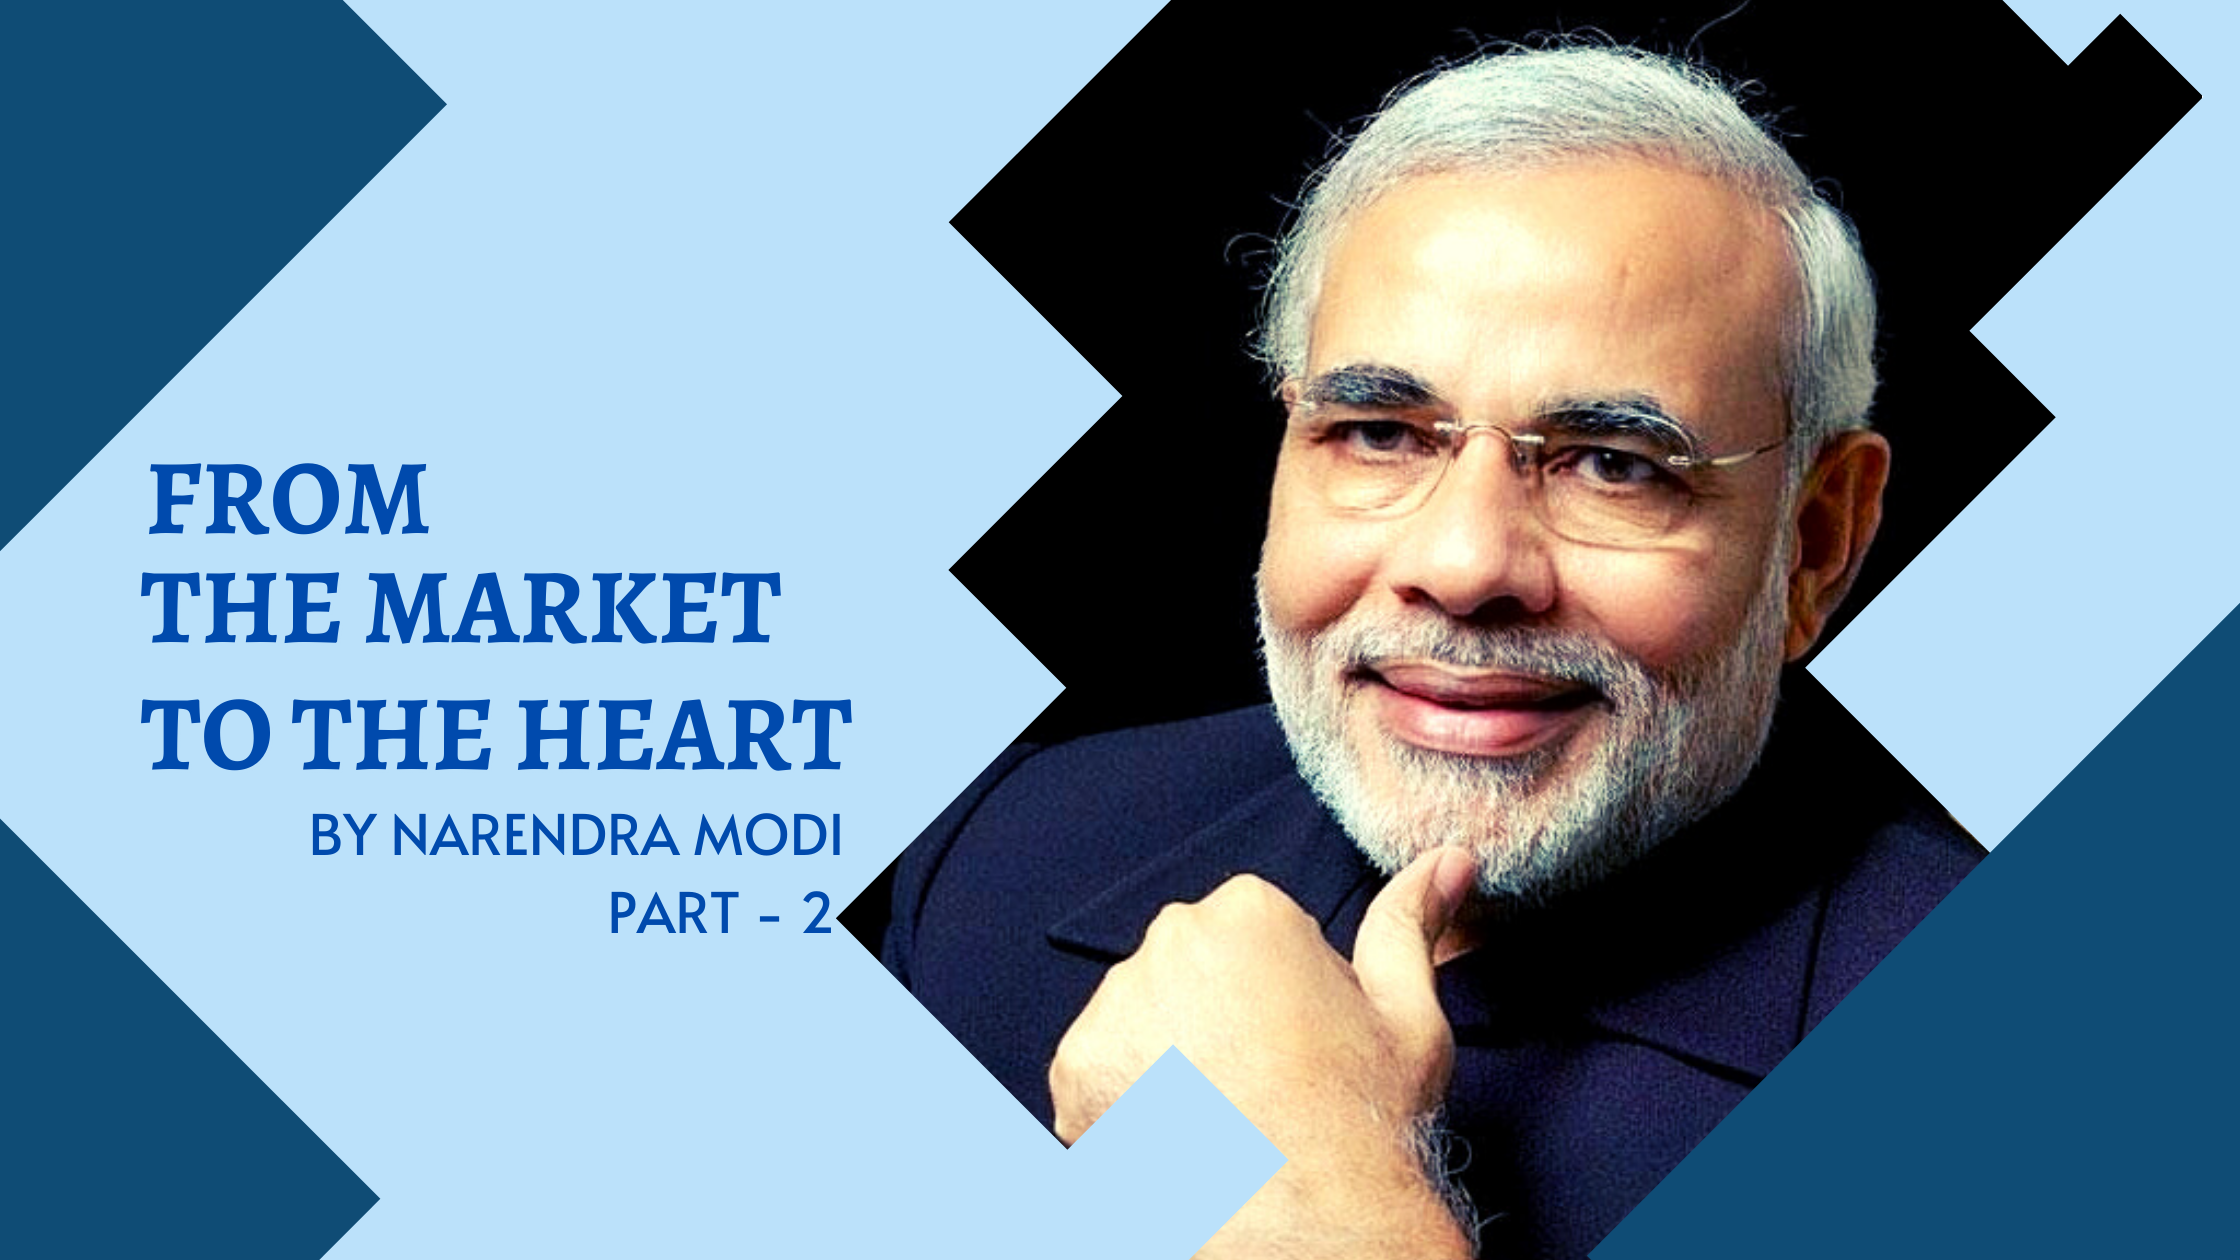 FROM THE MARKET TO THE HEART – PART – 2